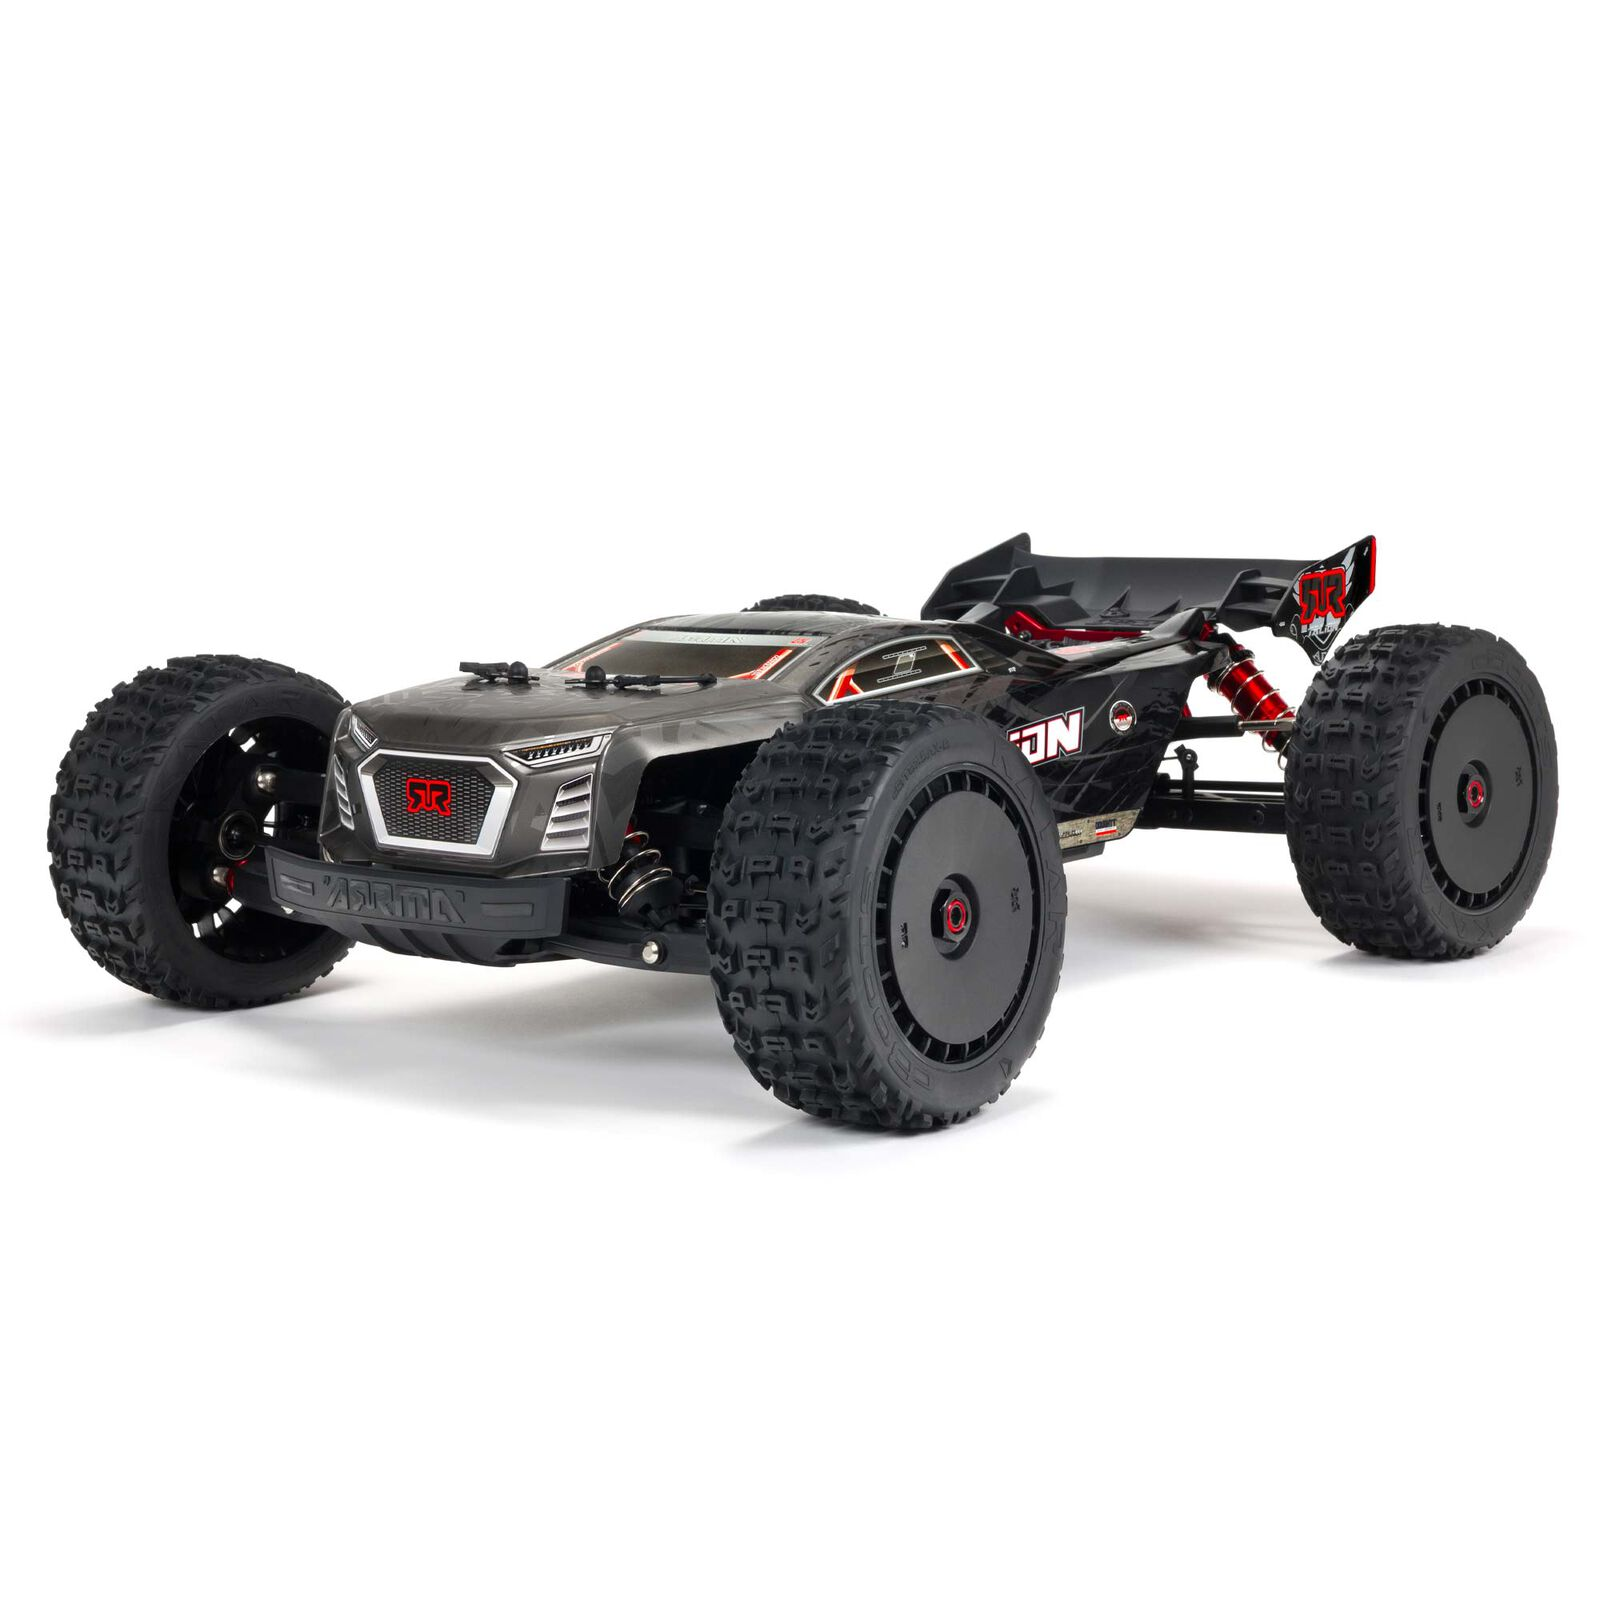 ARRMA Talion 6S BLX EXtreme Bash Speed Truggy RTR